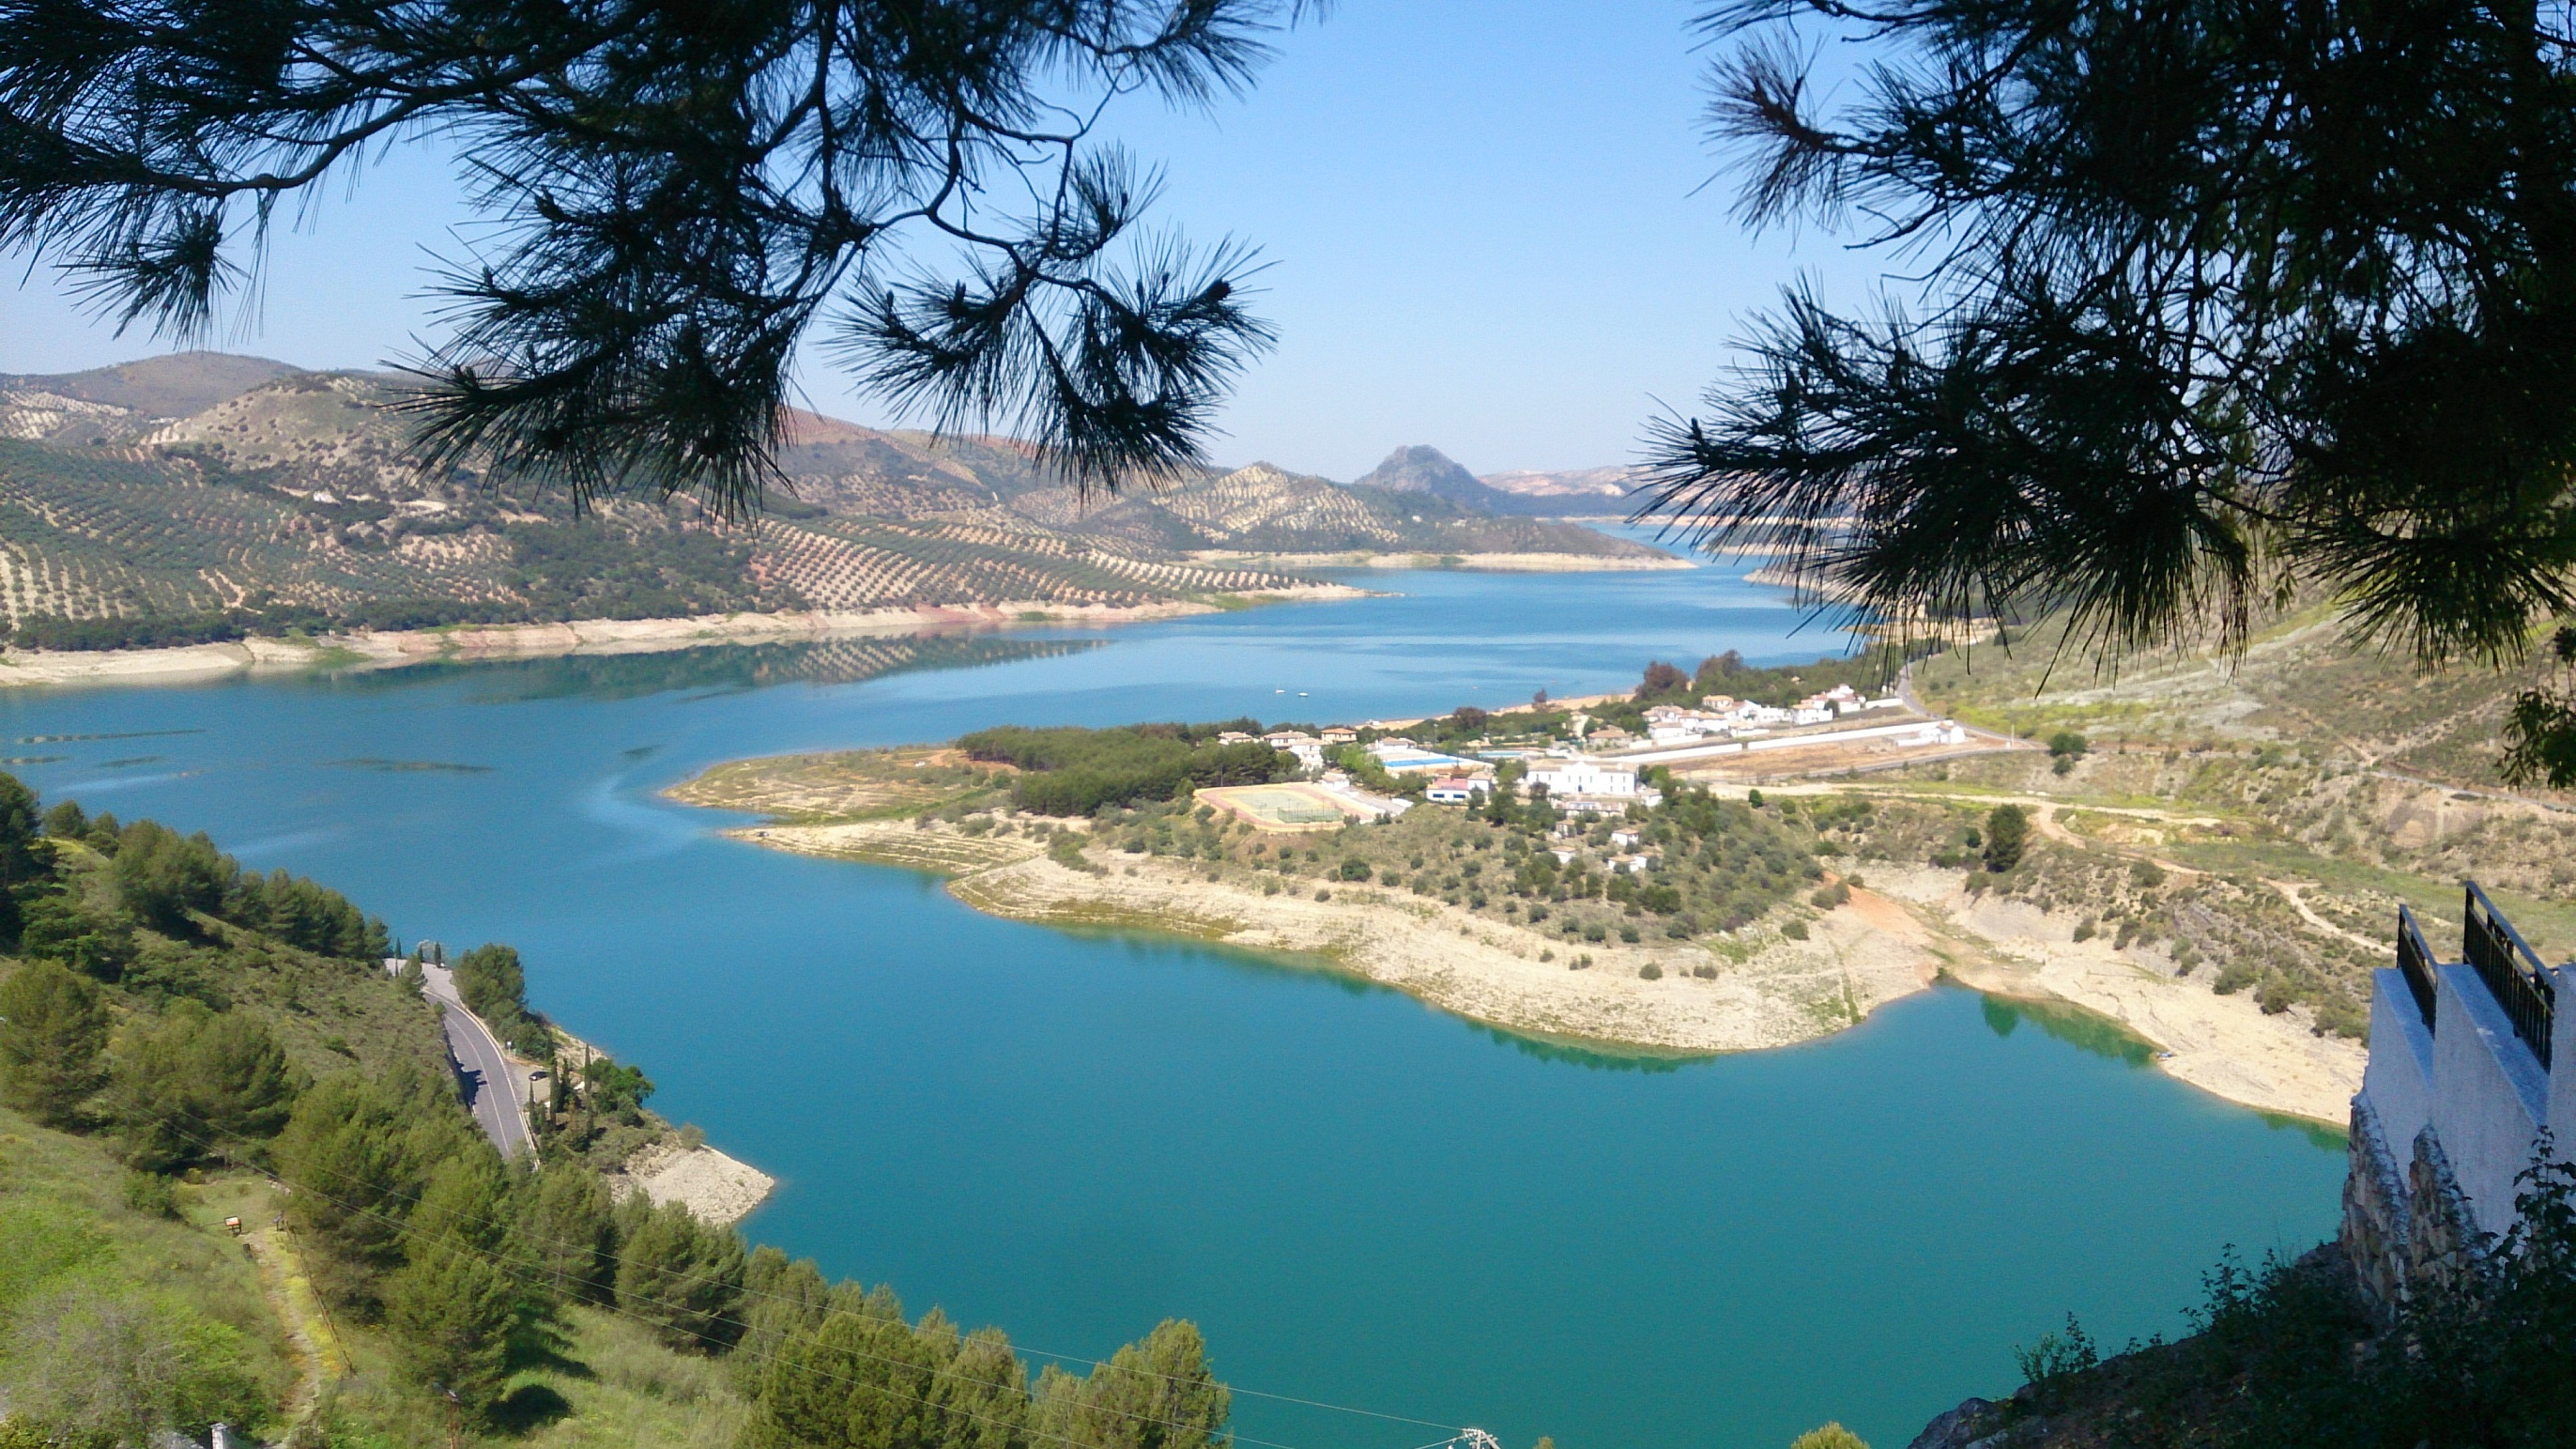 A view of the largest lake in Andalusia from the view point in Iznajar